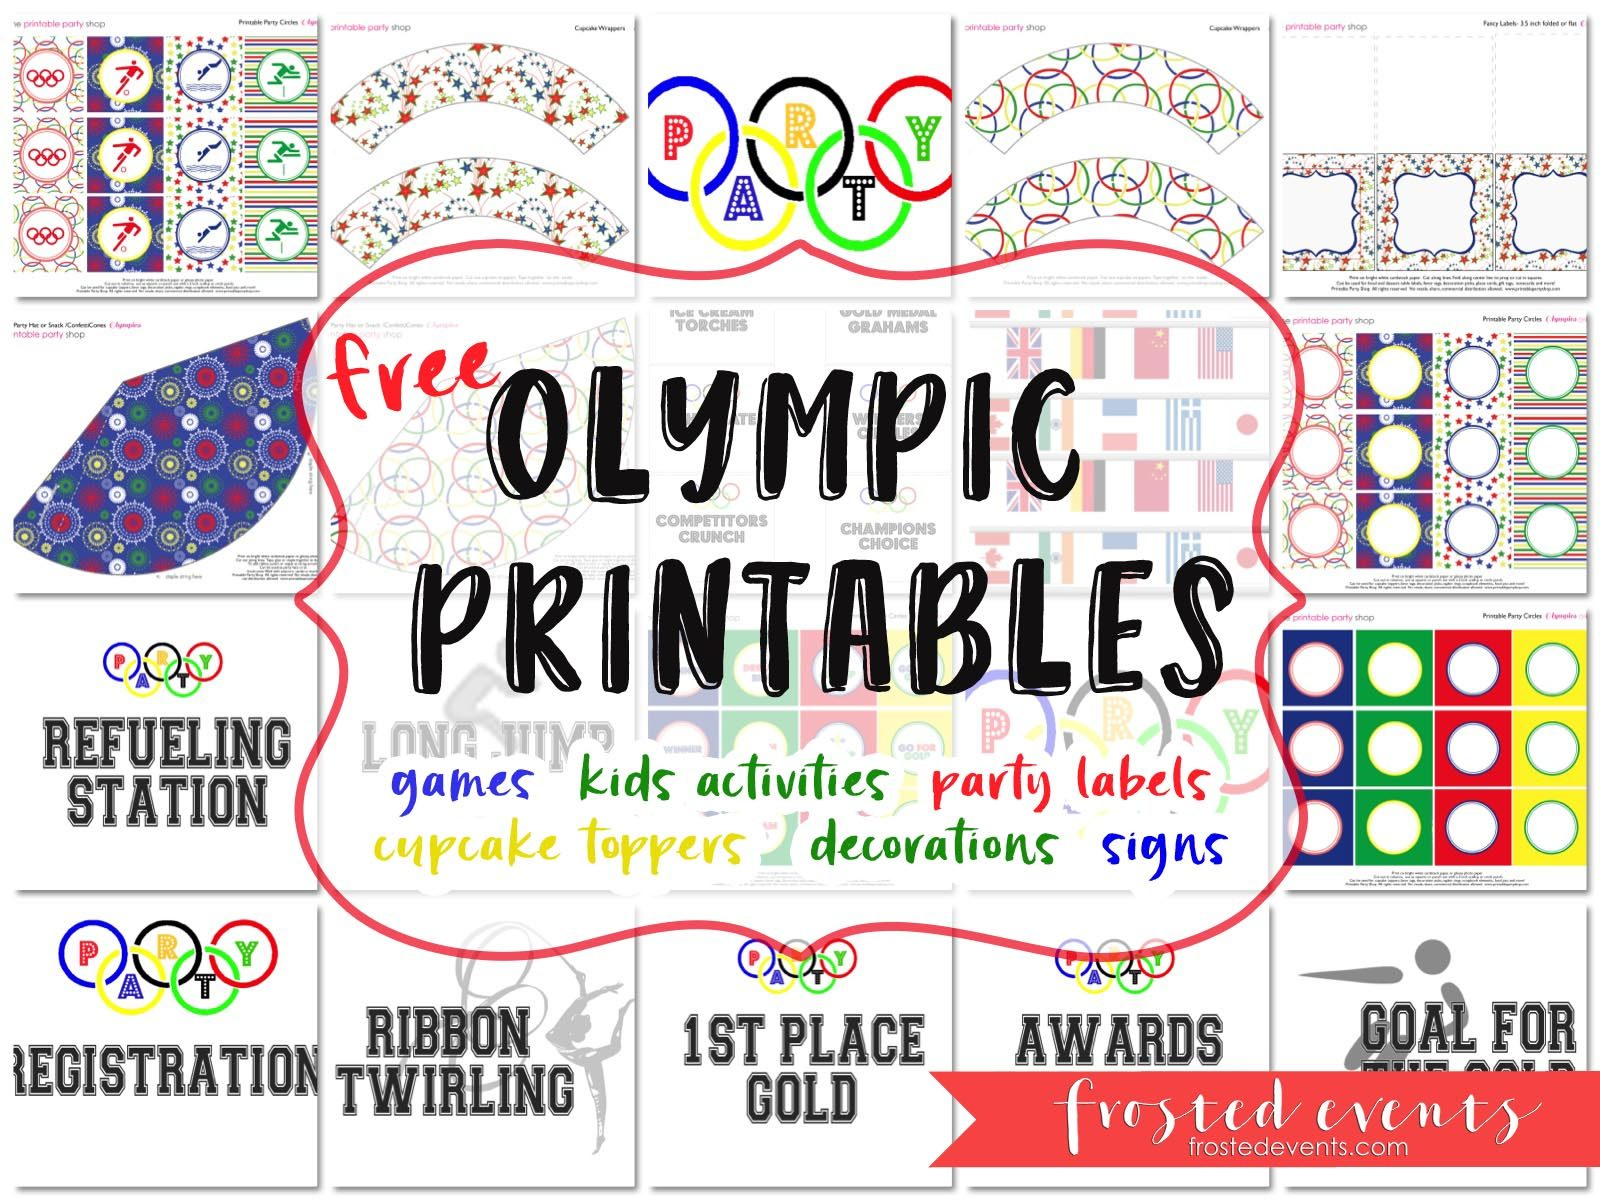 photo regarding Printable Olympic Schedule known as Olympics for Youngsters - Exciting Olympic Game titles and Occasion Printables